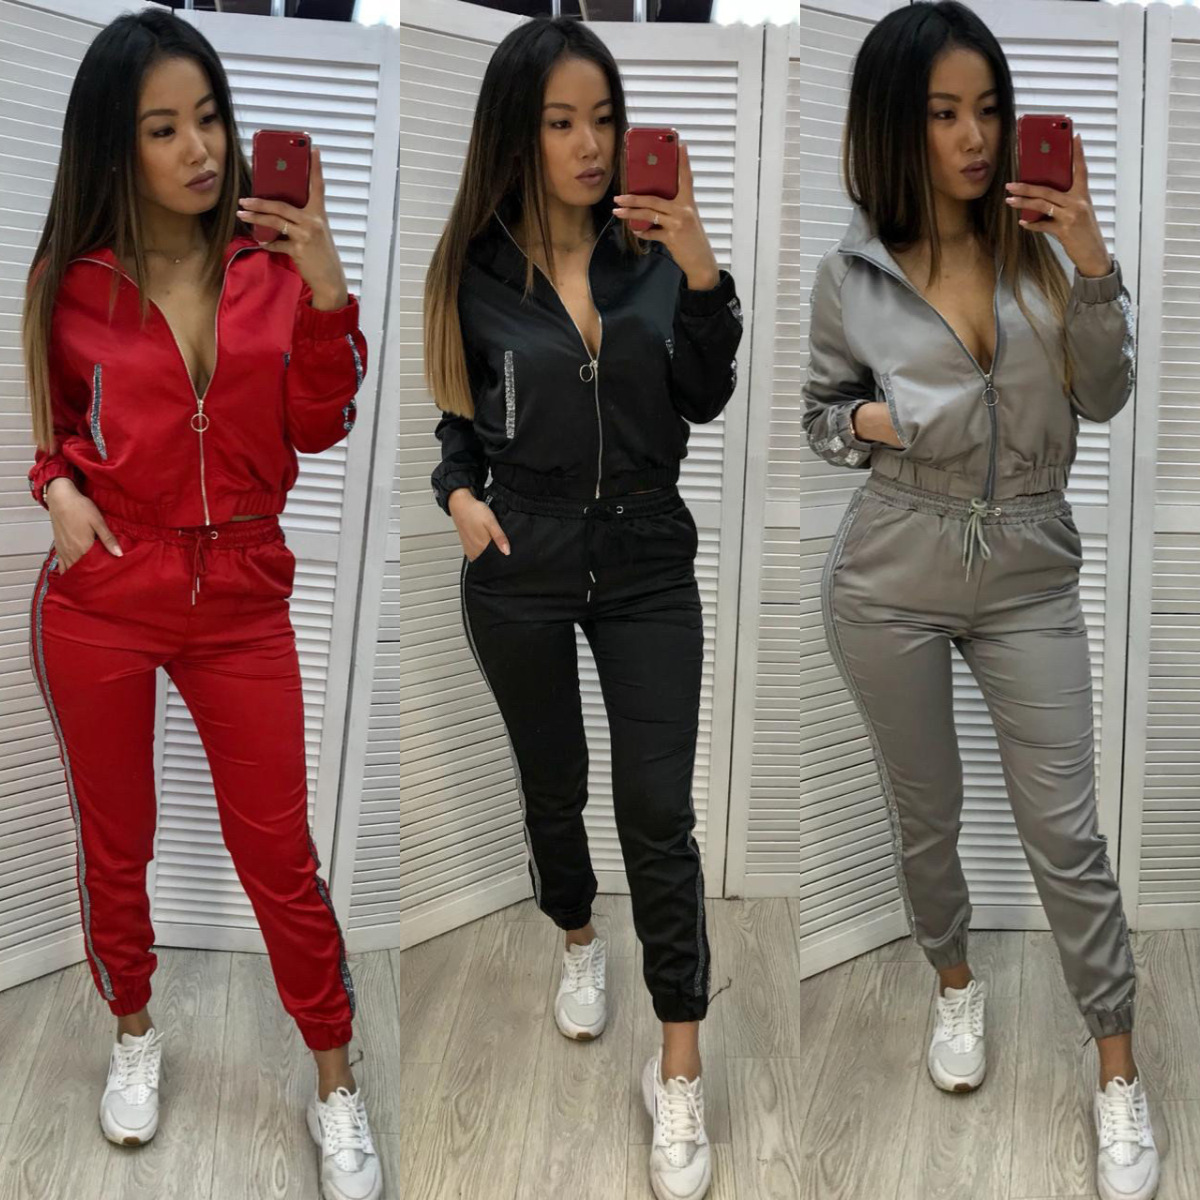 2019 New Women Two Piece Set Winter Sports Suits For Women Office Lady Loose Casual Female Zipper Sports Suit Fashion Tracksuits